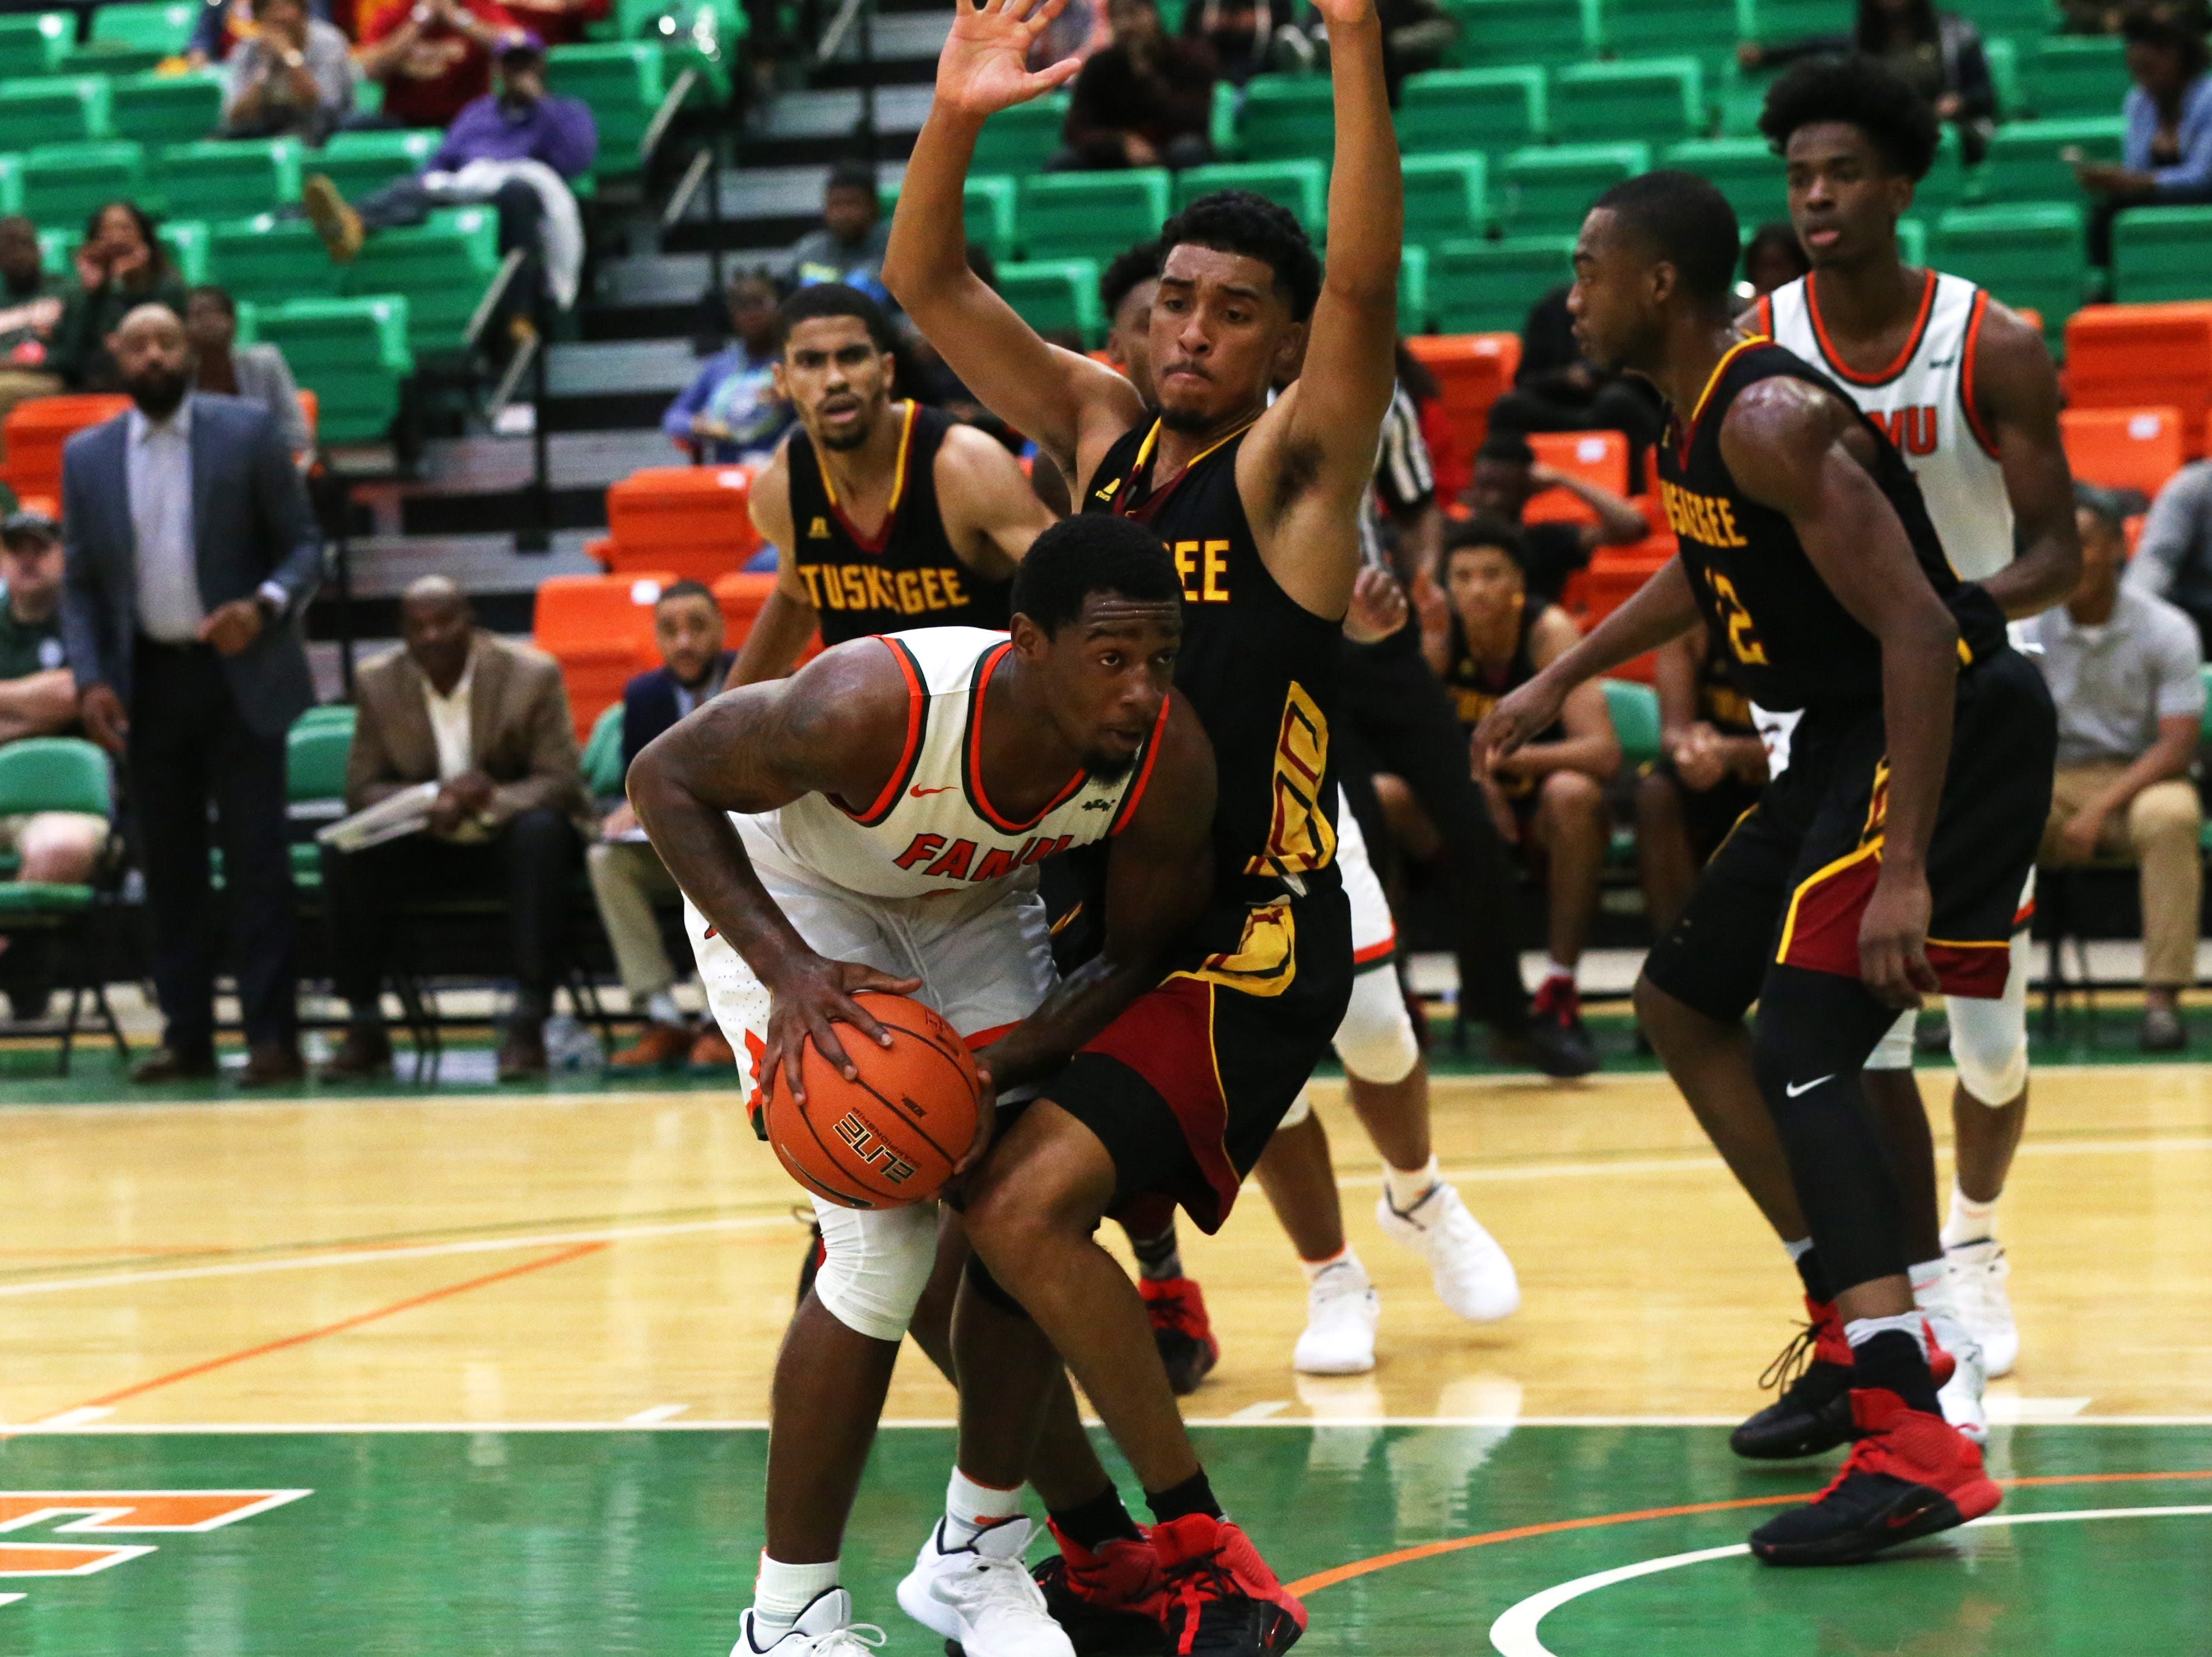 Florida A&M Rattlers forward Tracy Hector Jr. (0) looks for an open teammate as the FAMU Rattlers take on the Tuskegee Golden Tigers in their first home game of the season in the Lawson Center, Saturday, Nov. 10, 2018.